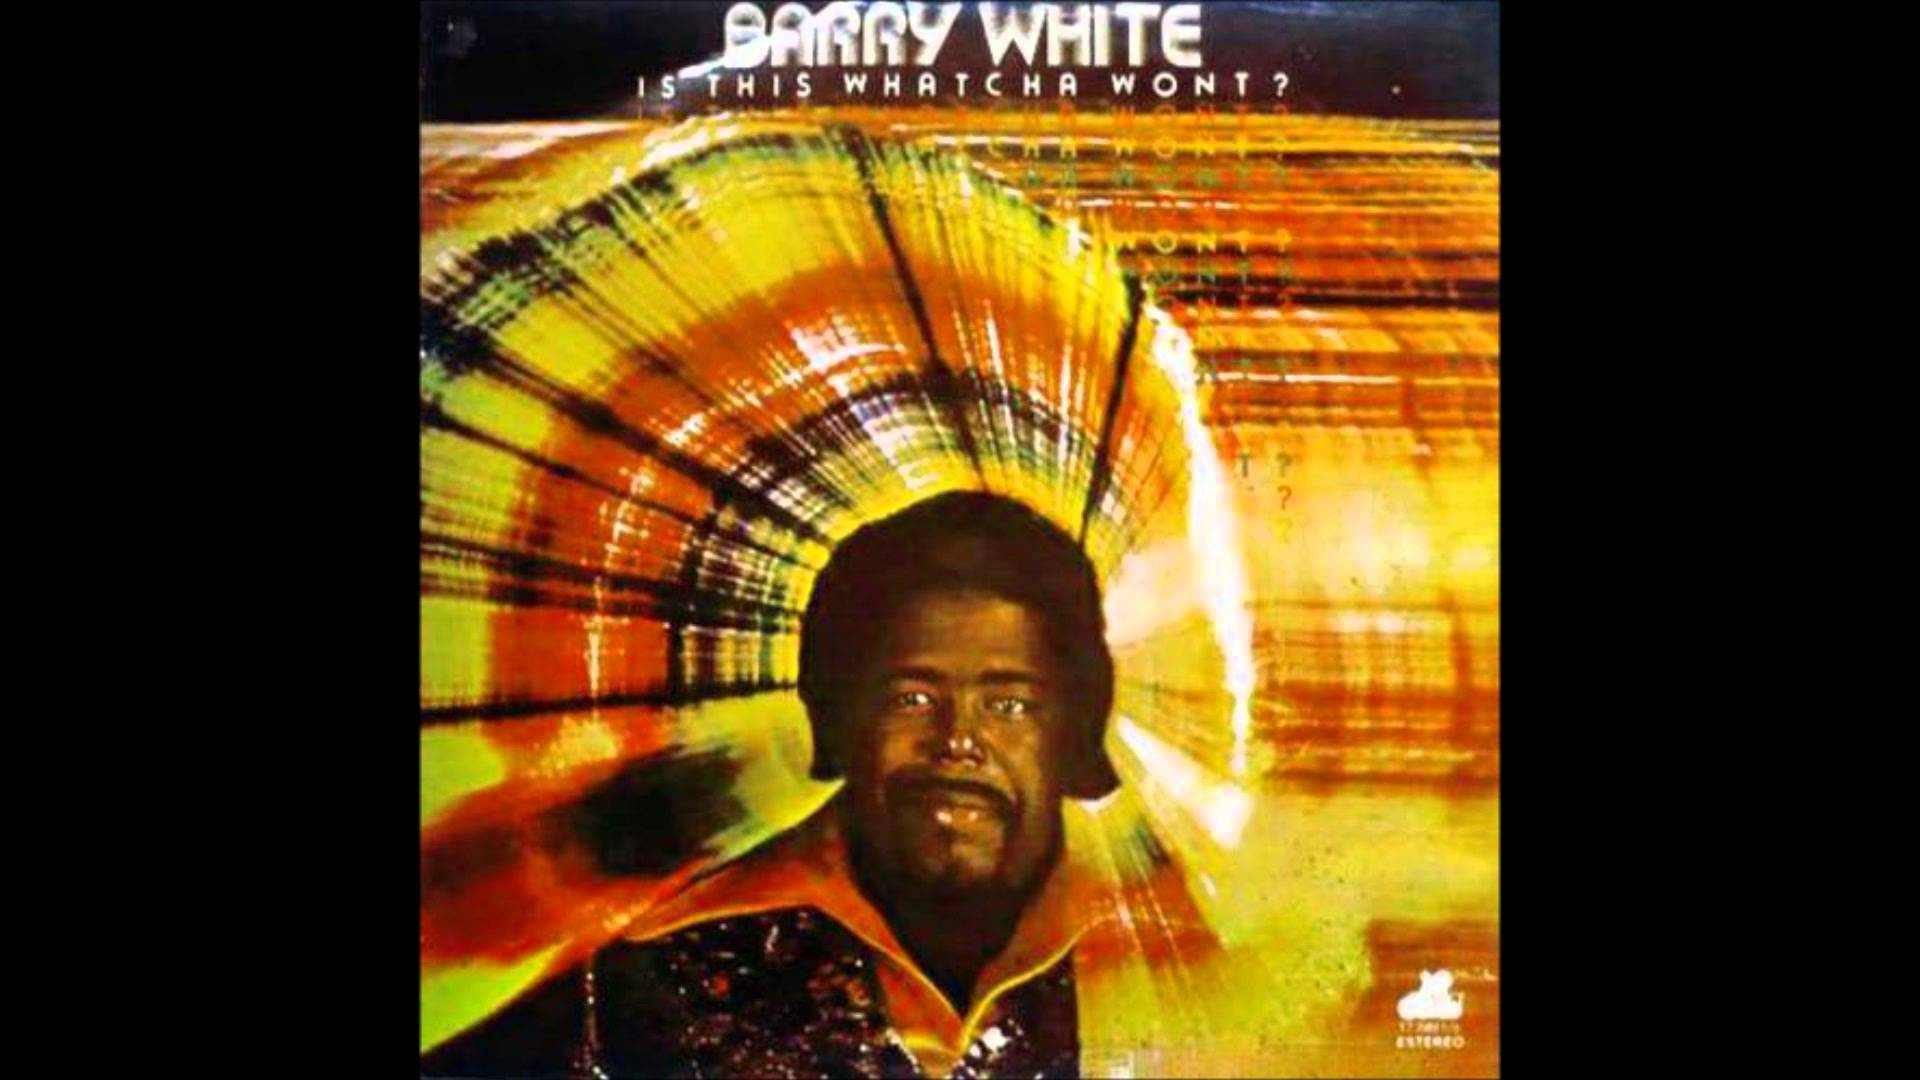 Barry White – I'm Qualified To Satisfy You